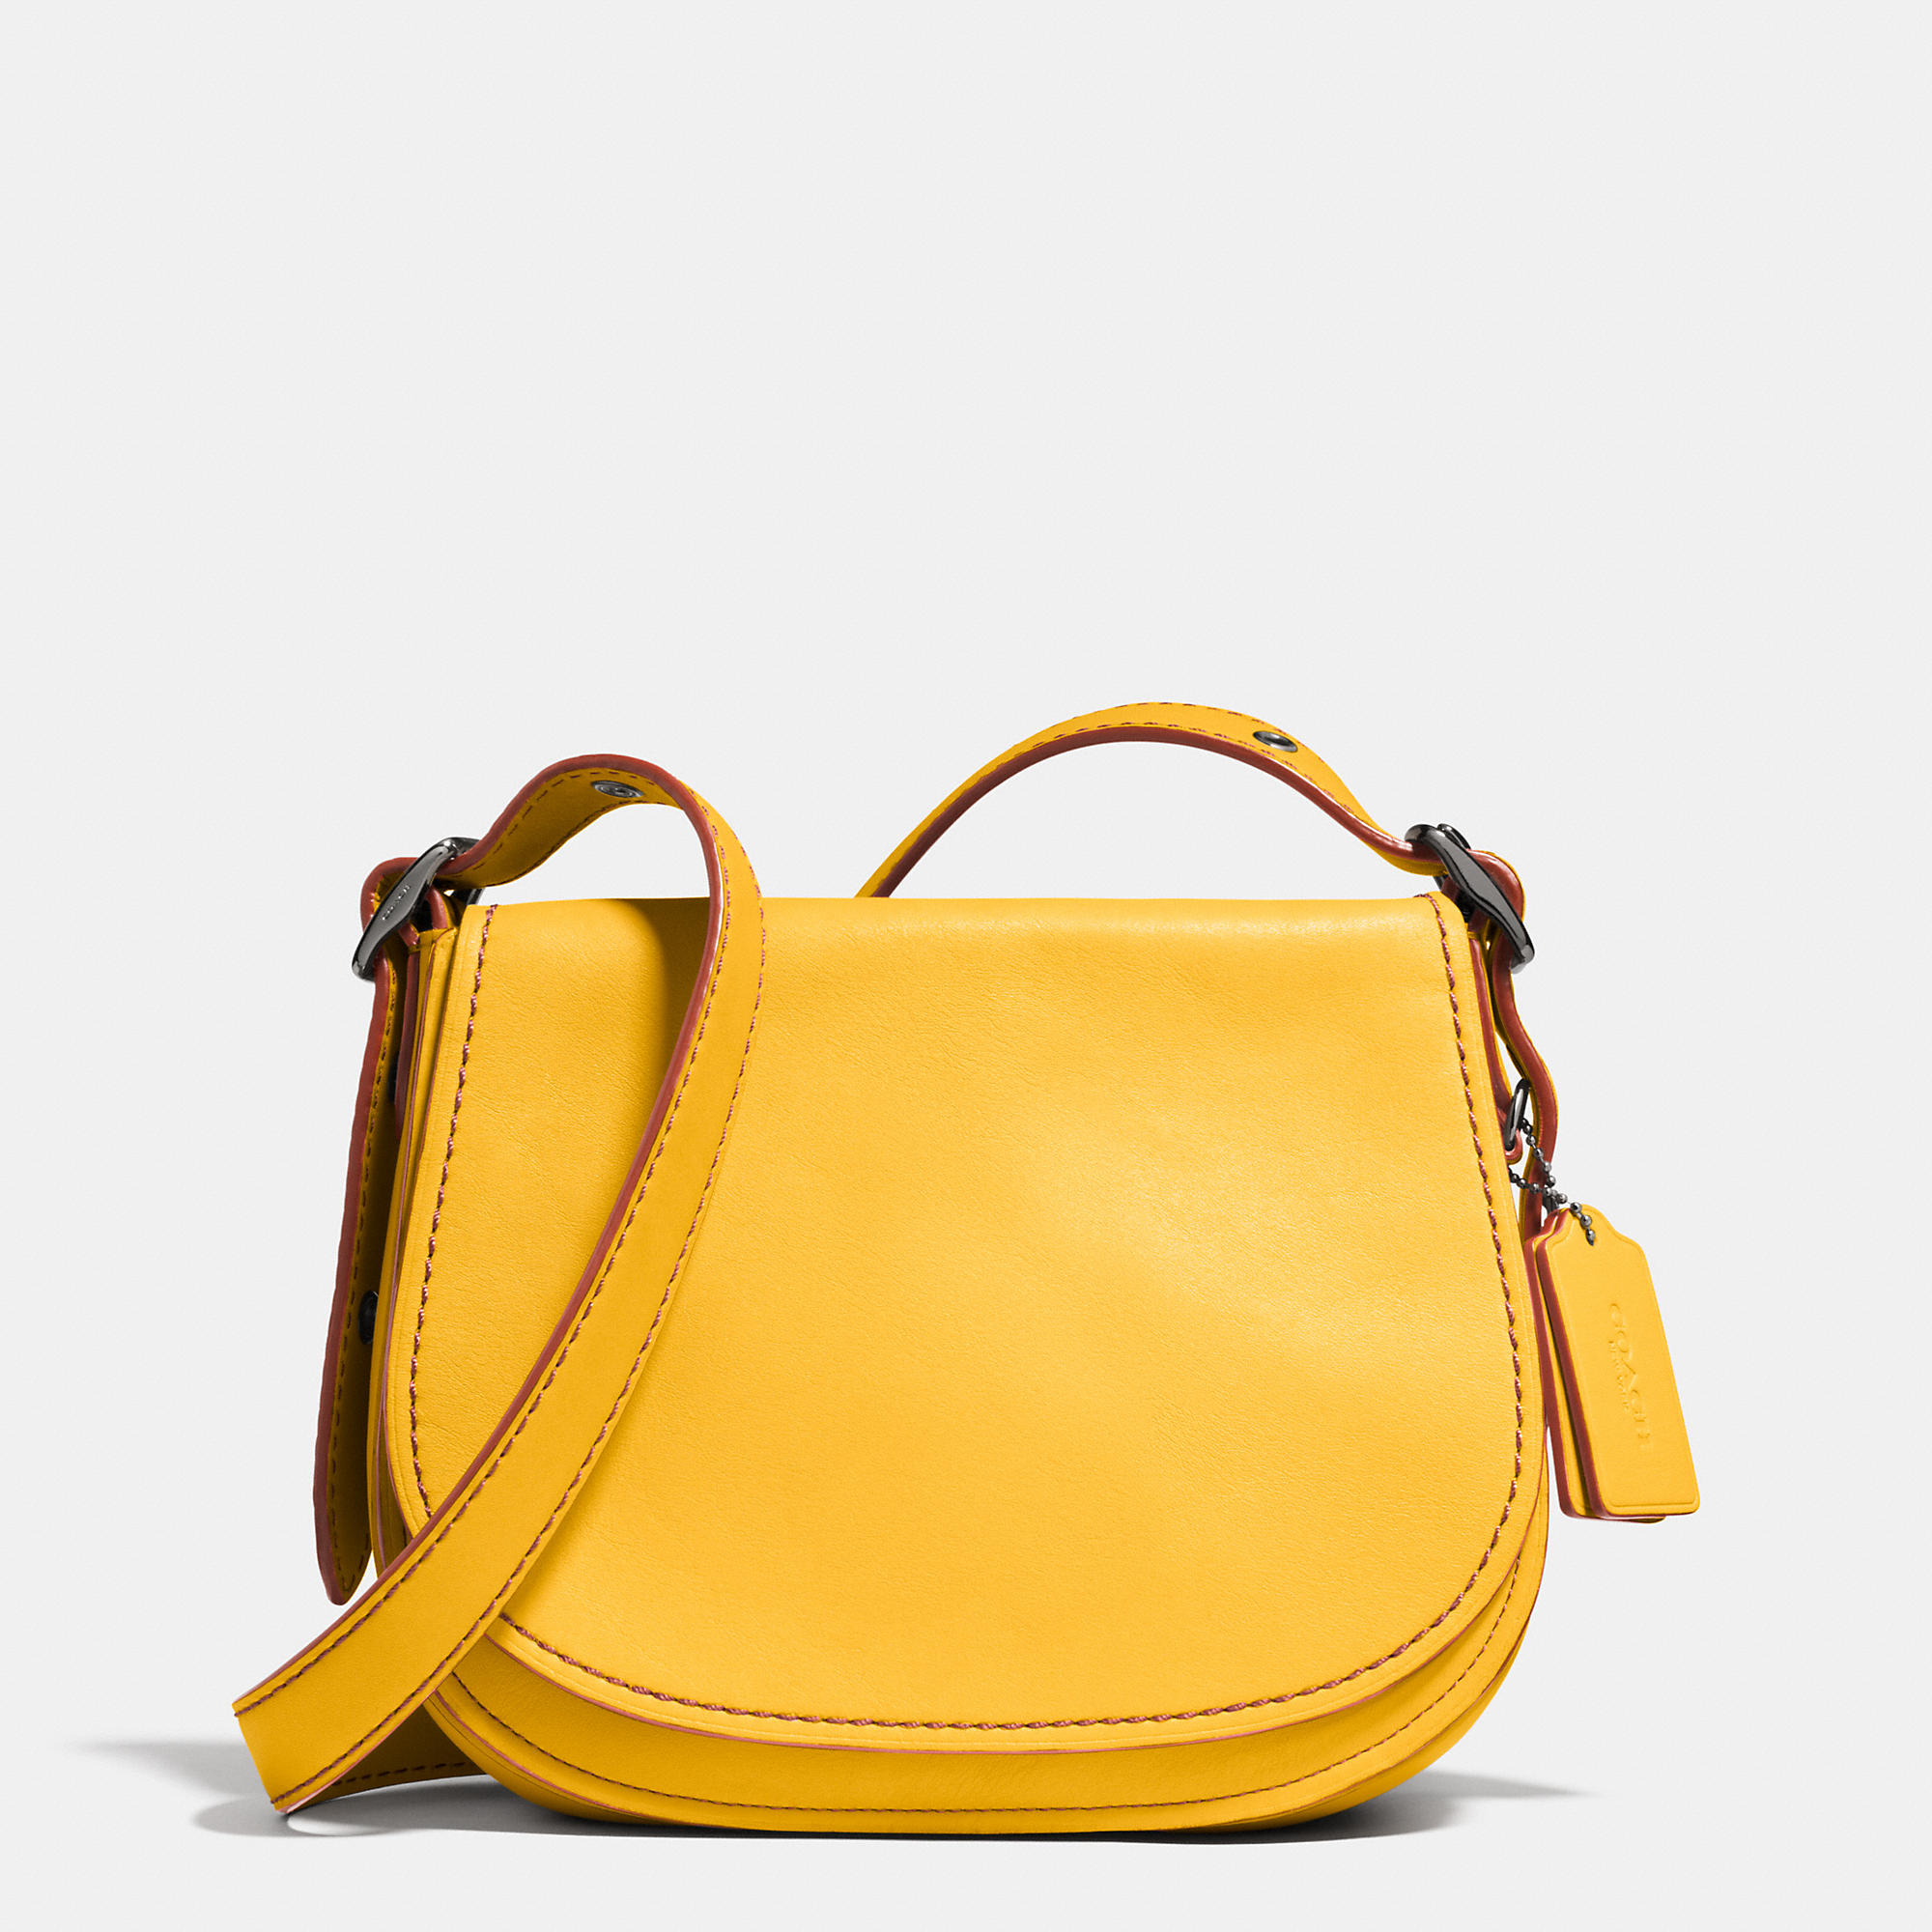 66f85dd83f ... authentic lyst coach saddle bag 23 in glovetanned leather yellow 705a6  95a74